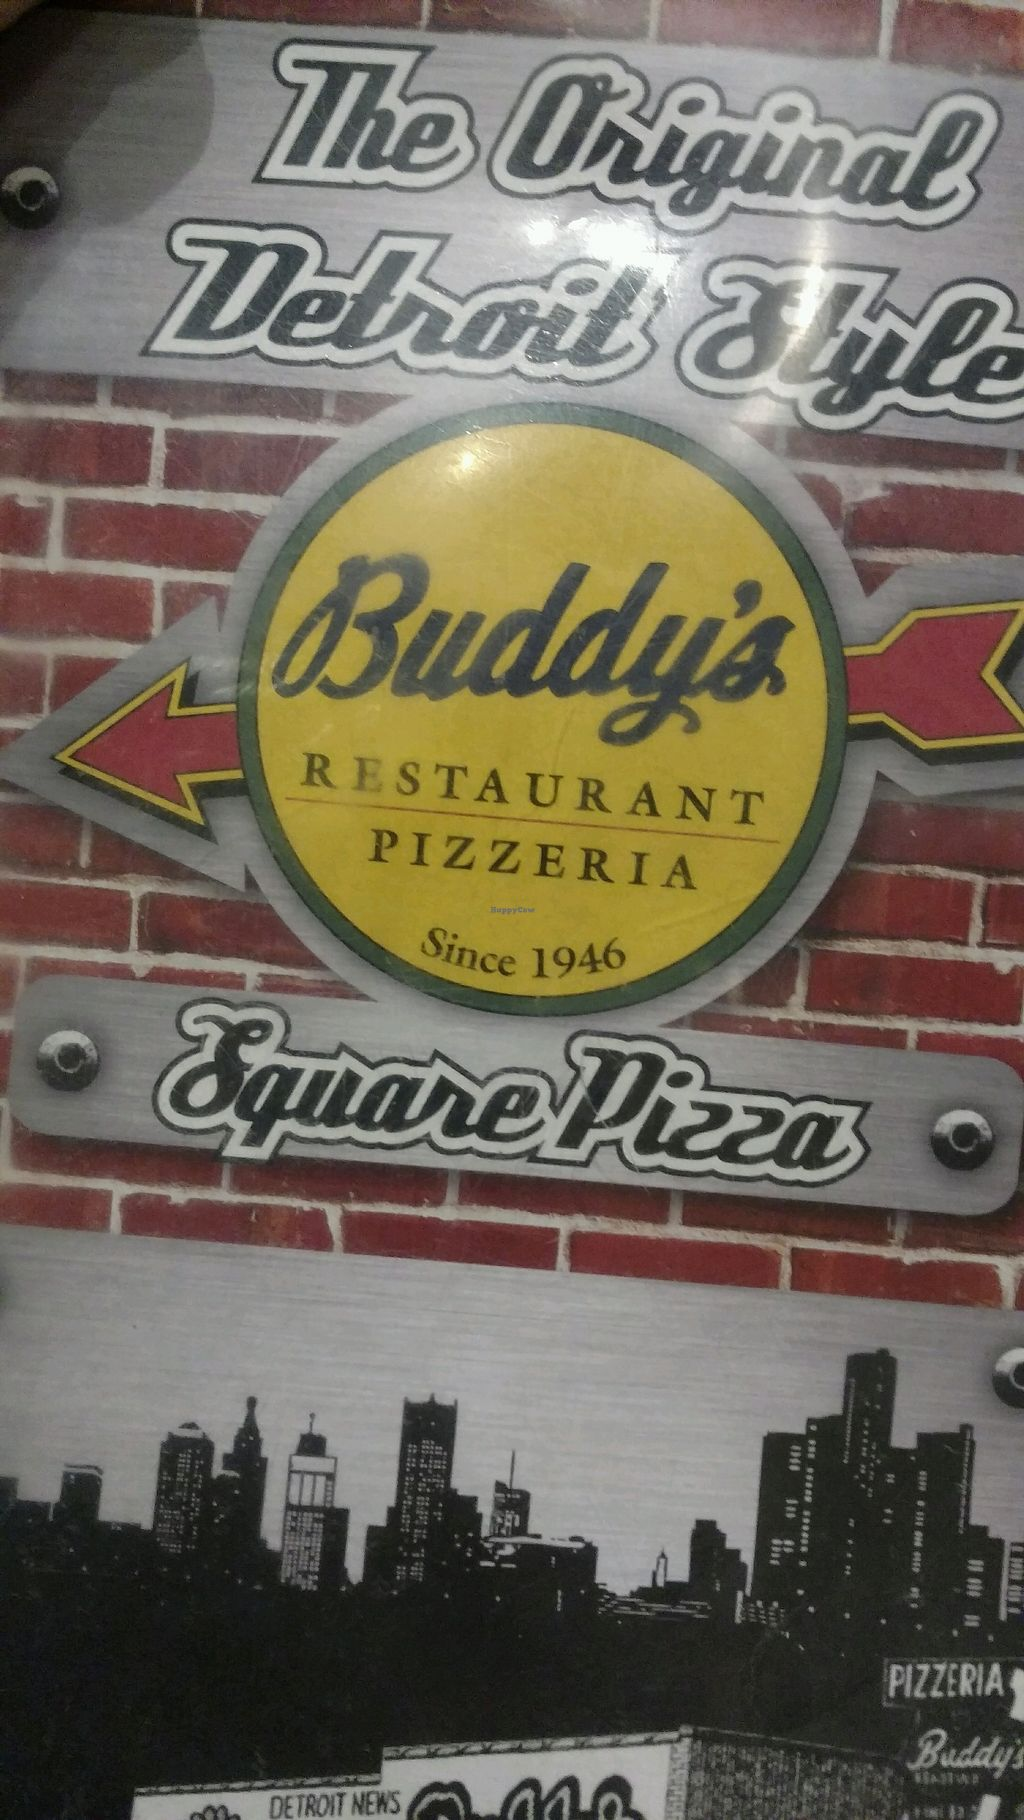 "Photo of Buddy's Pizzeria  by <a href=""/members/profile/Queensnake88"">Queensnake88</a> <br/>menu front <br/> February 24, 2018  - <a href='/contact/abuse/image/54577/363016'>Report</a>"